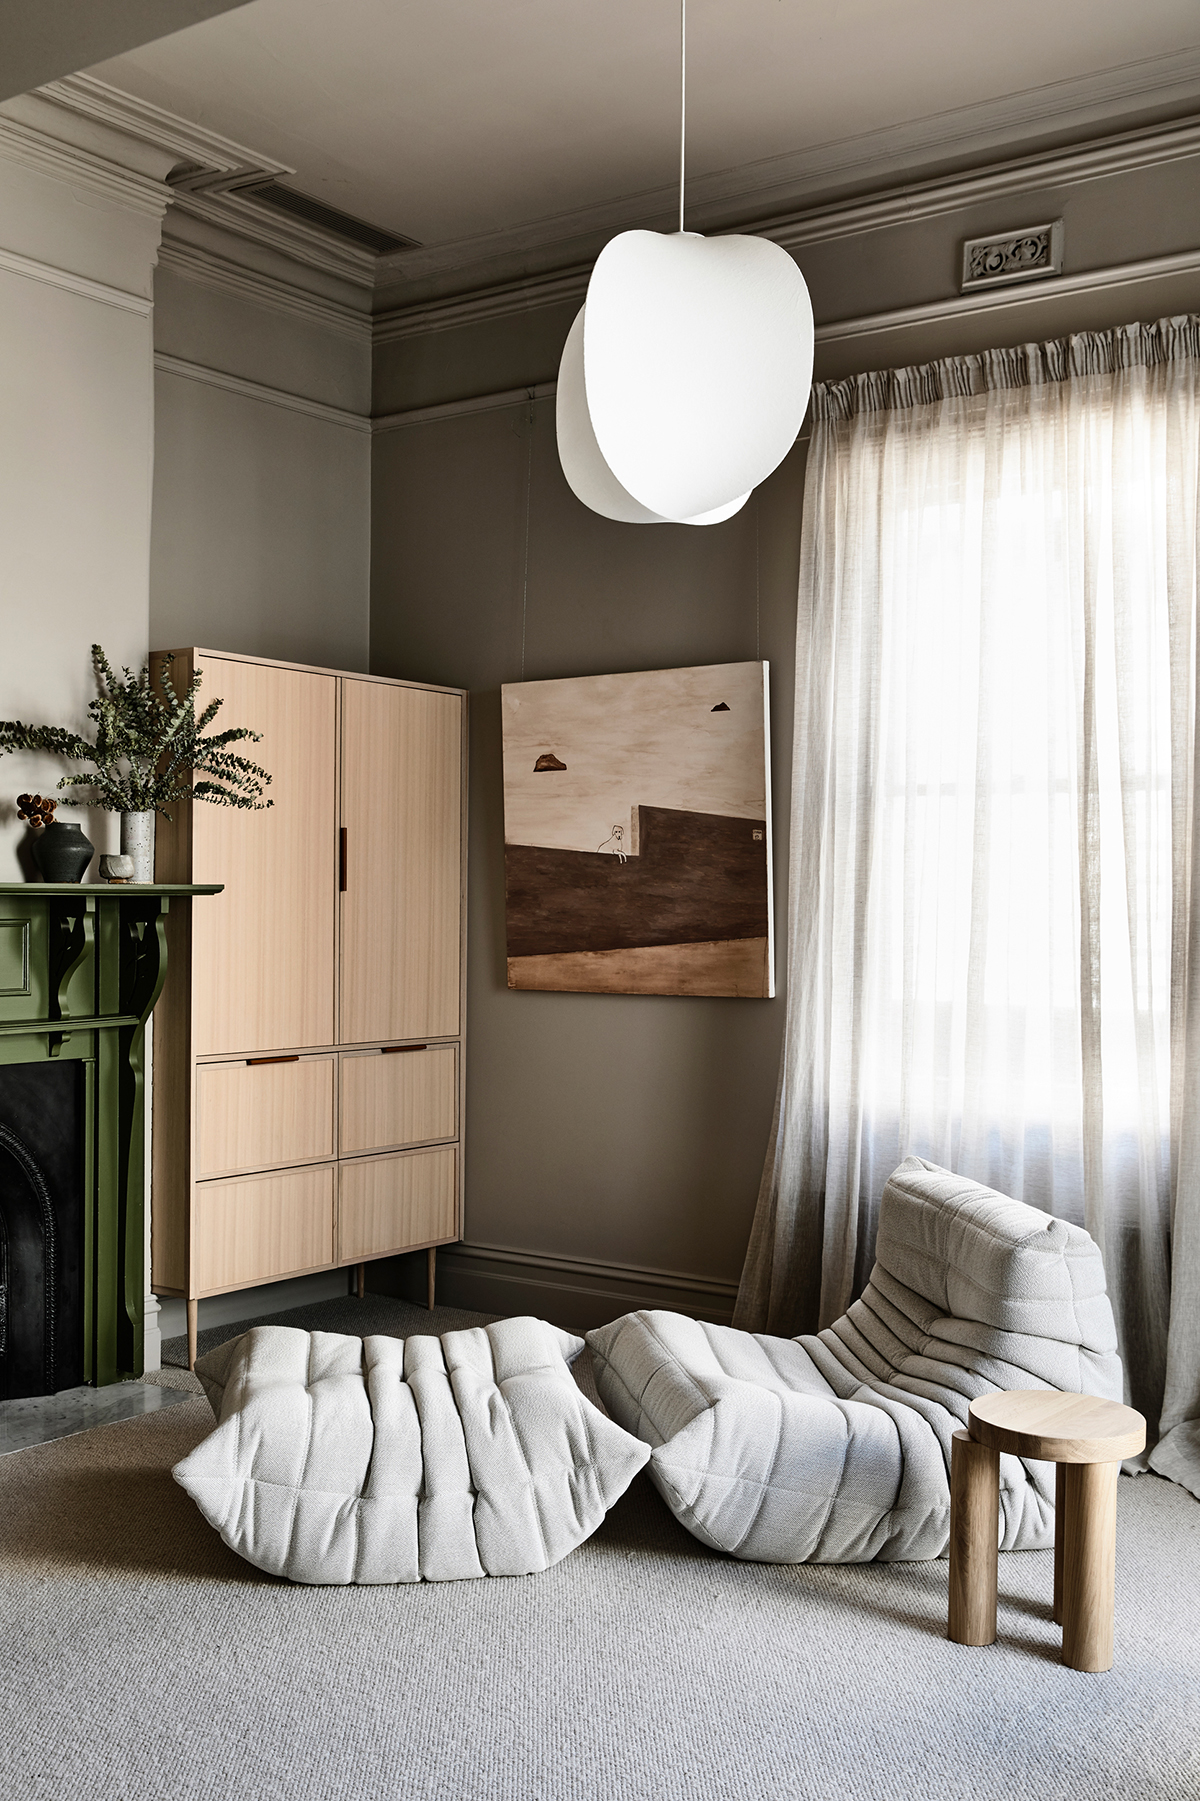 Dulux Colour Awards 2019 Residential Interior winner - Caroline House designed by architects Kennedy Nolan